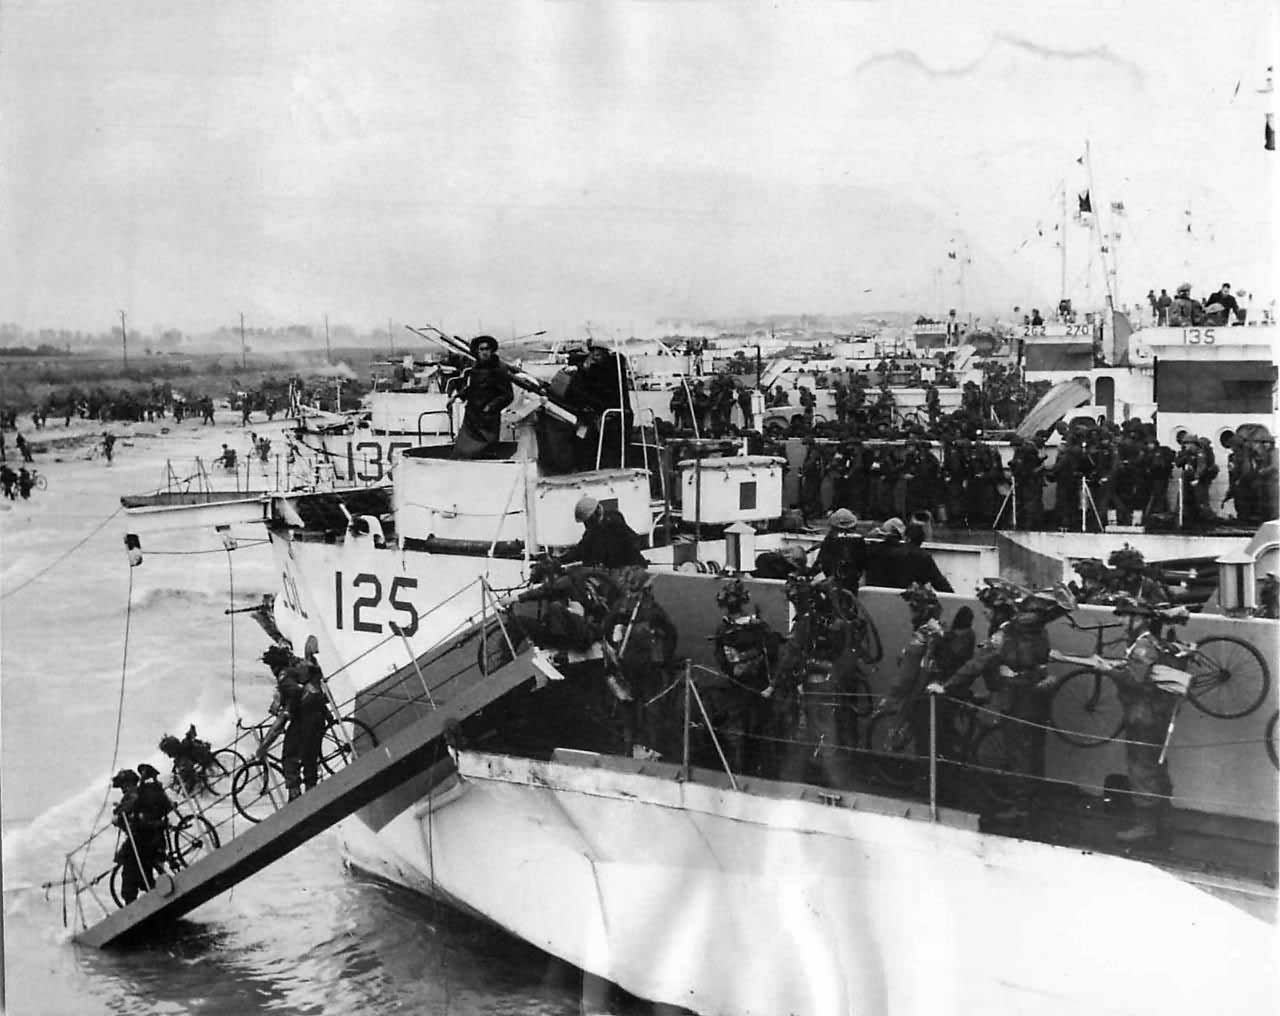 Canadaian bicycle Troops land at Juno s Nan White Beach on D-Day